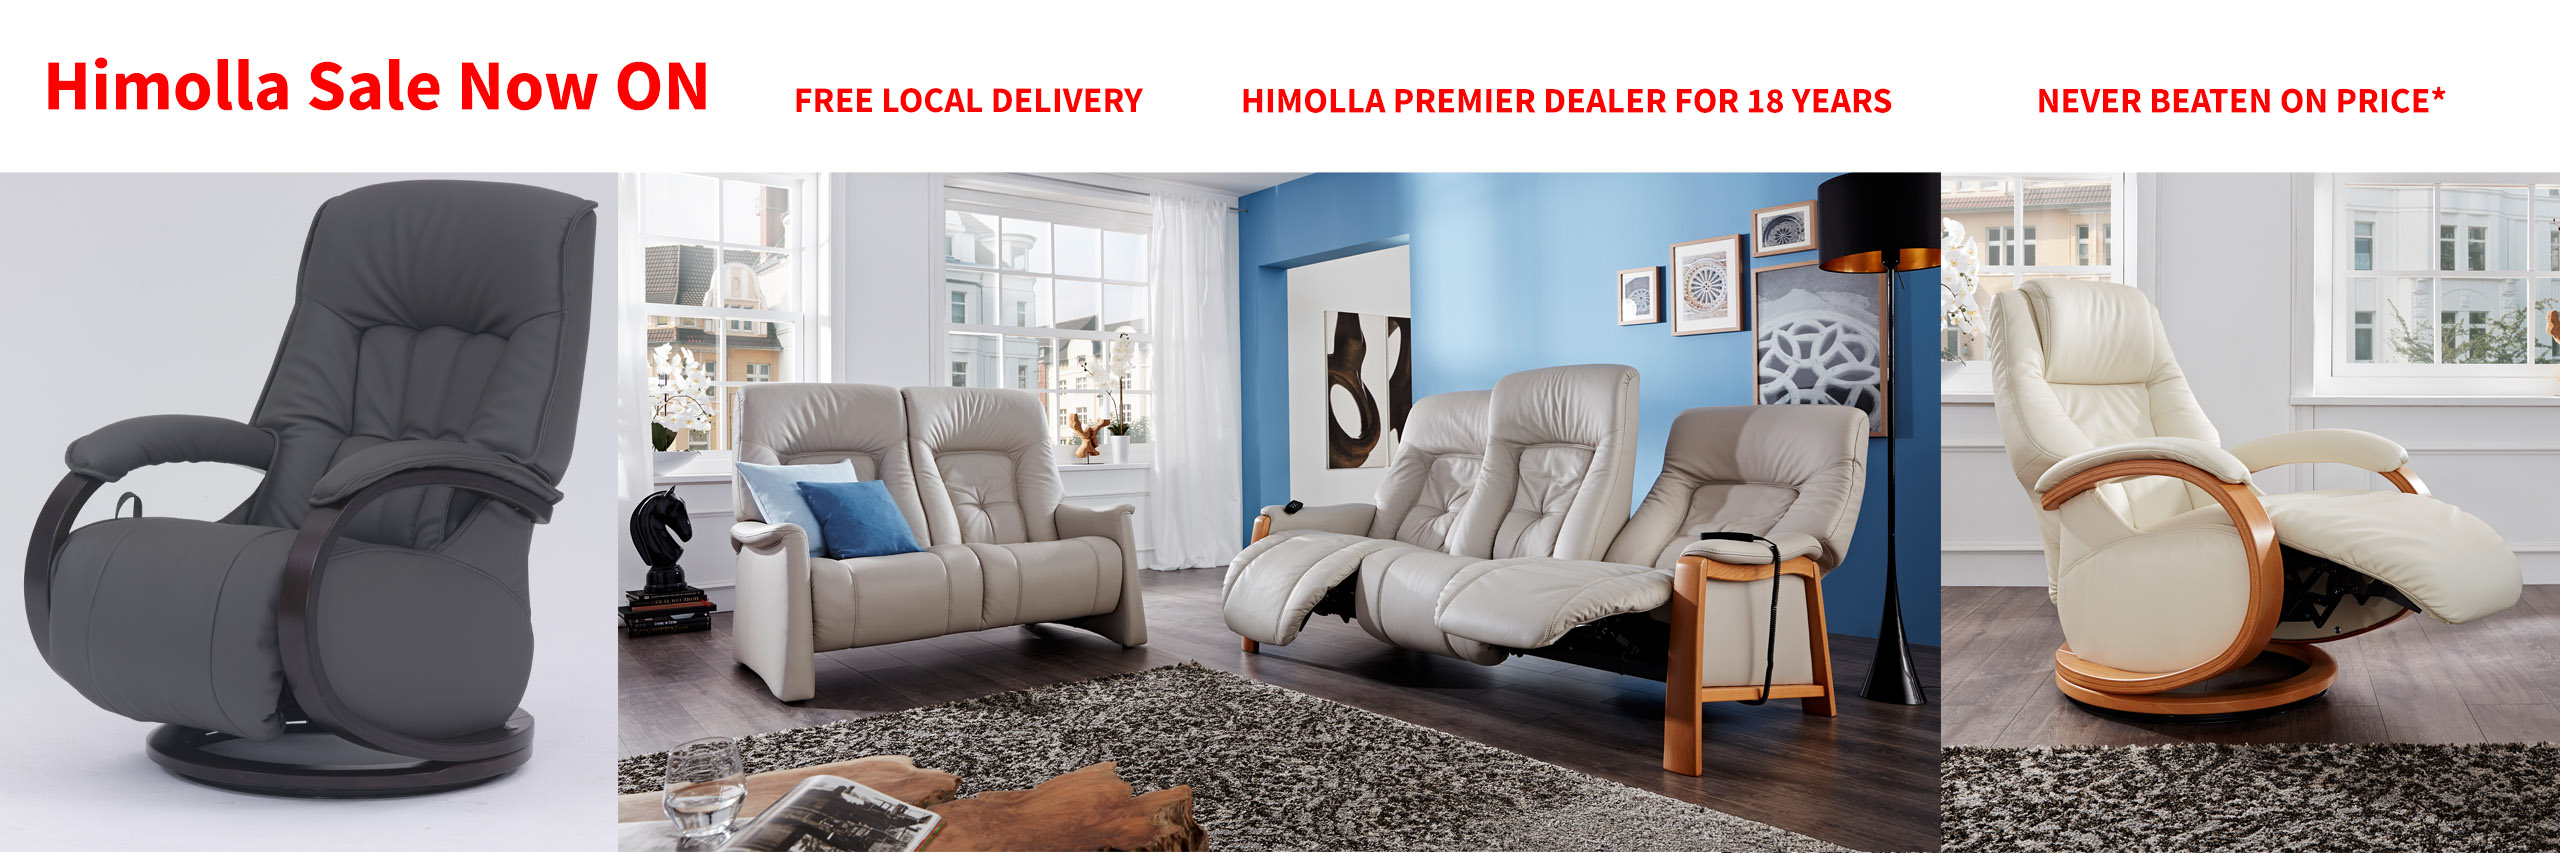 Himolla Sales Price Banner